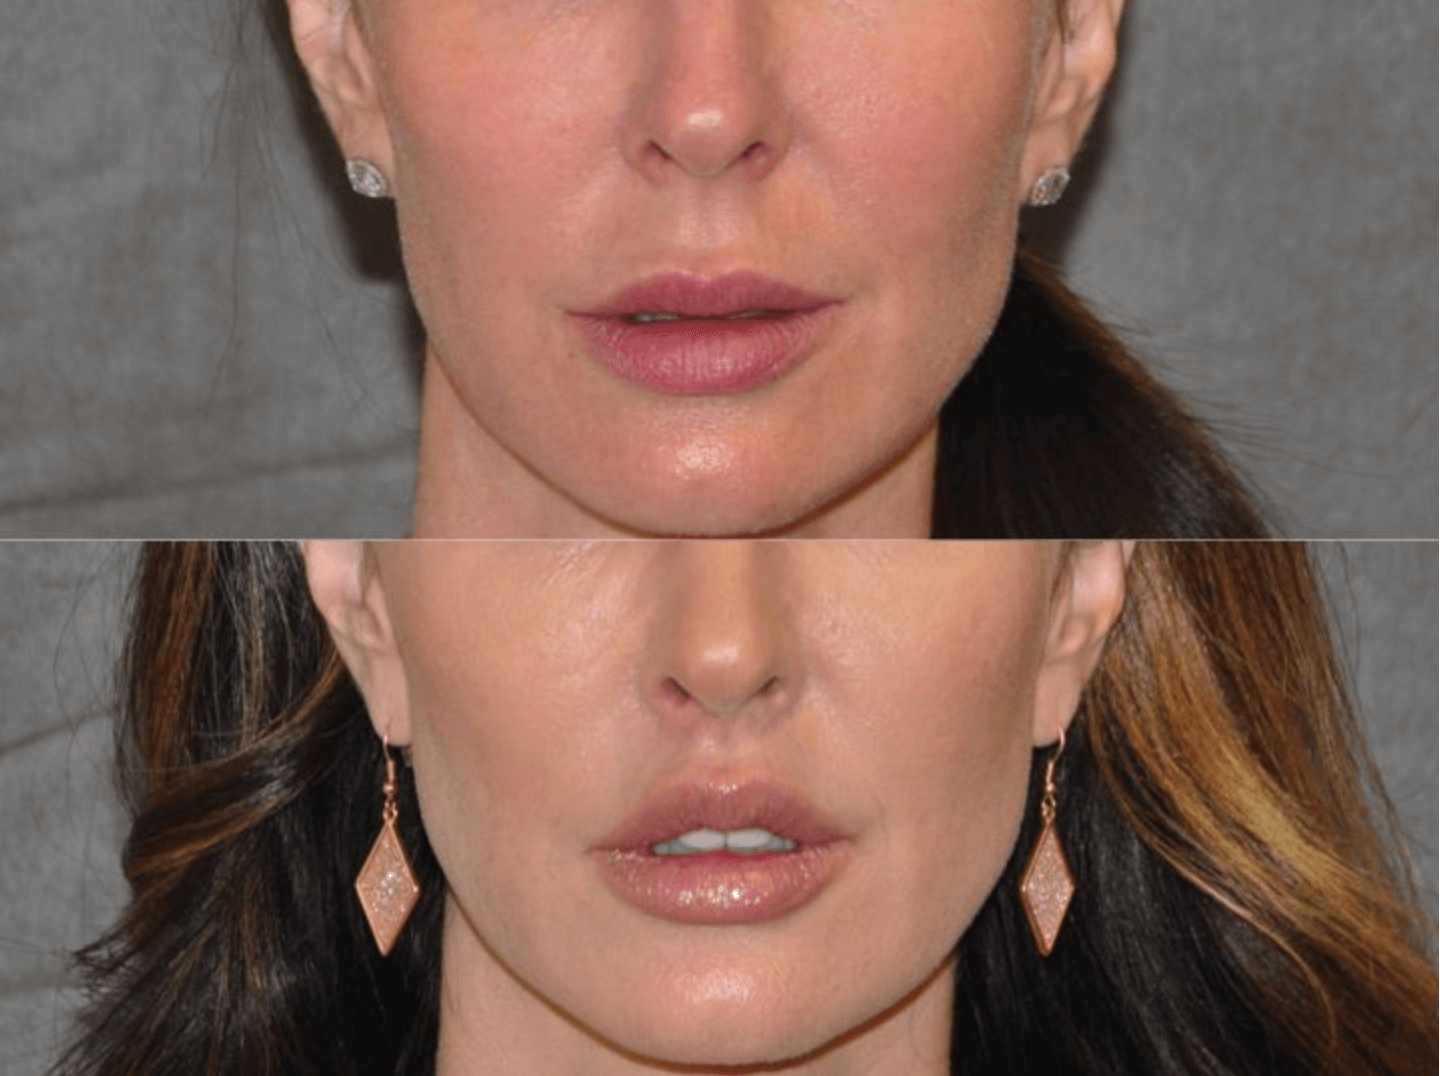 Dental Lip Lift before and after photos